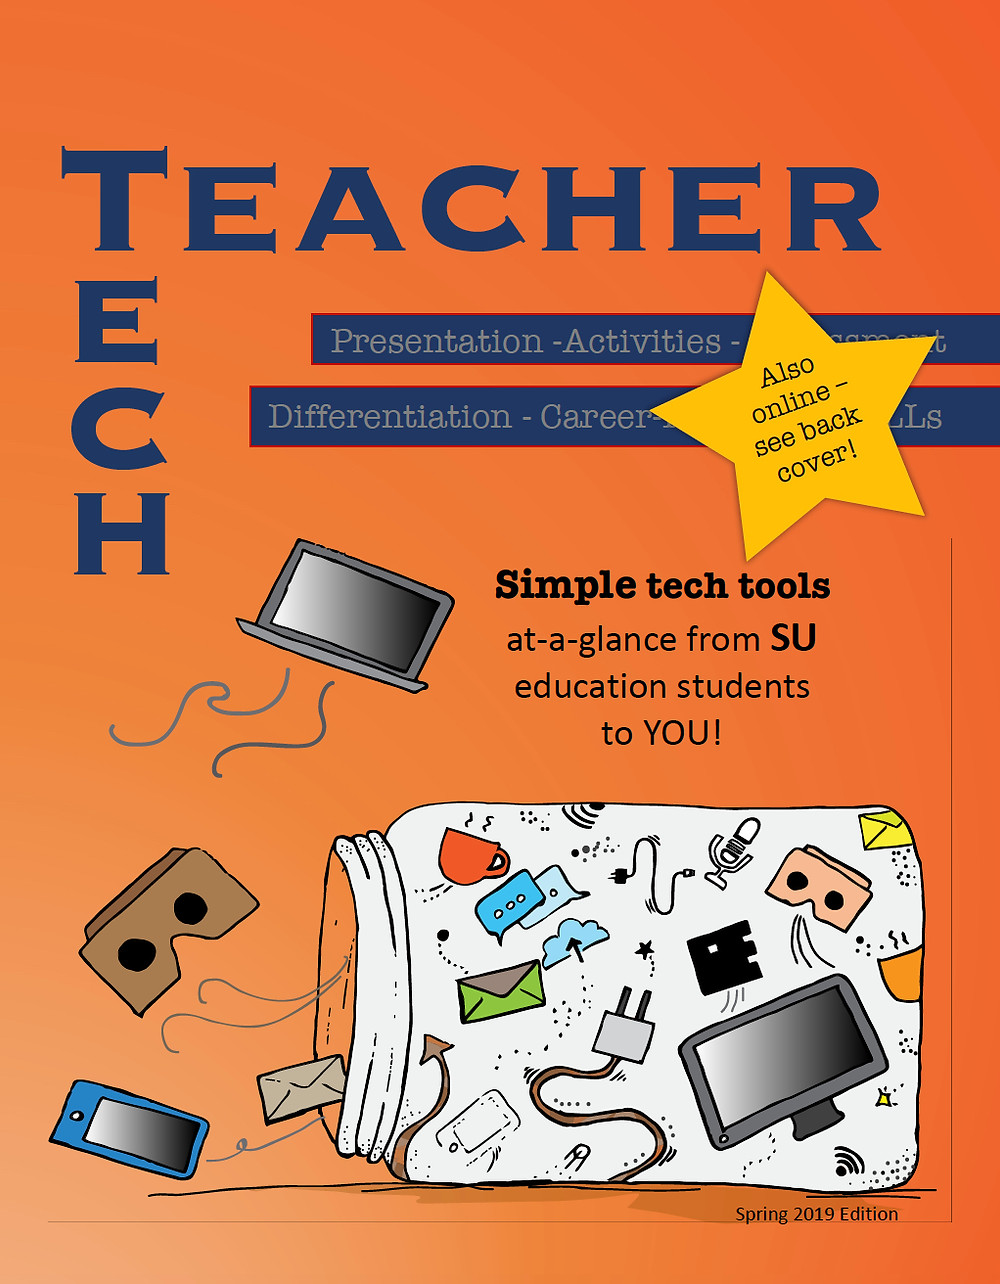 Tech Teacher handbook created by preservice teachers